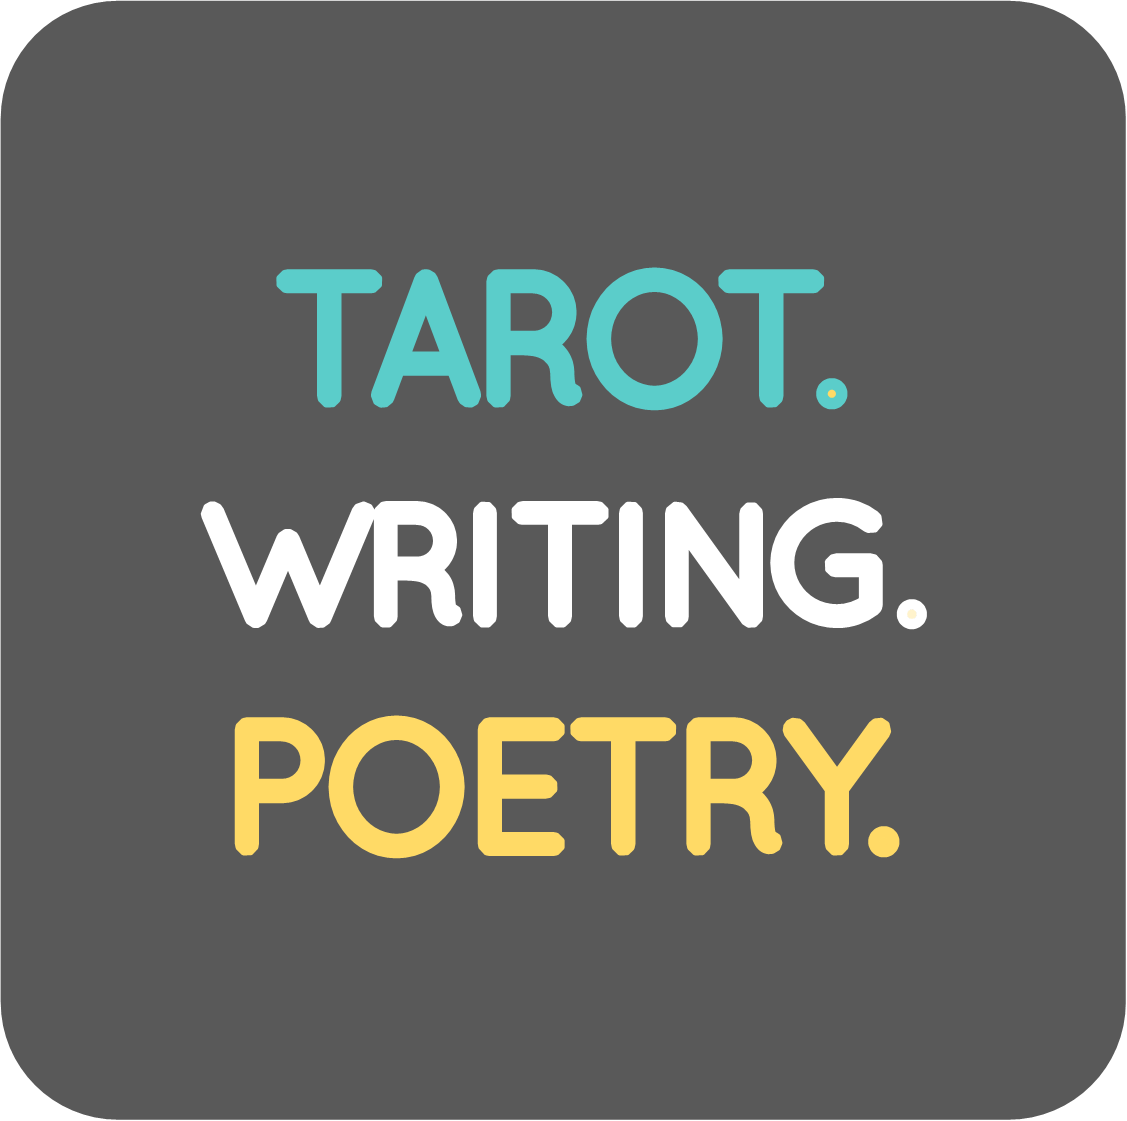 12-tarot writing poetry.png